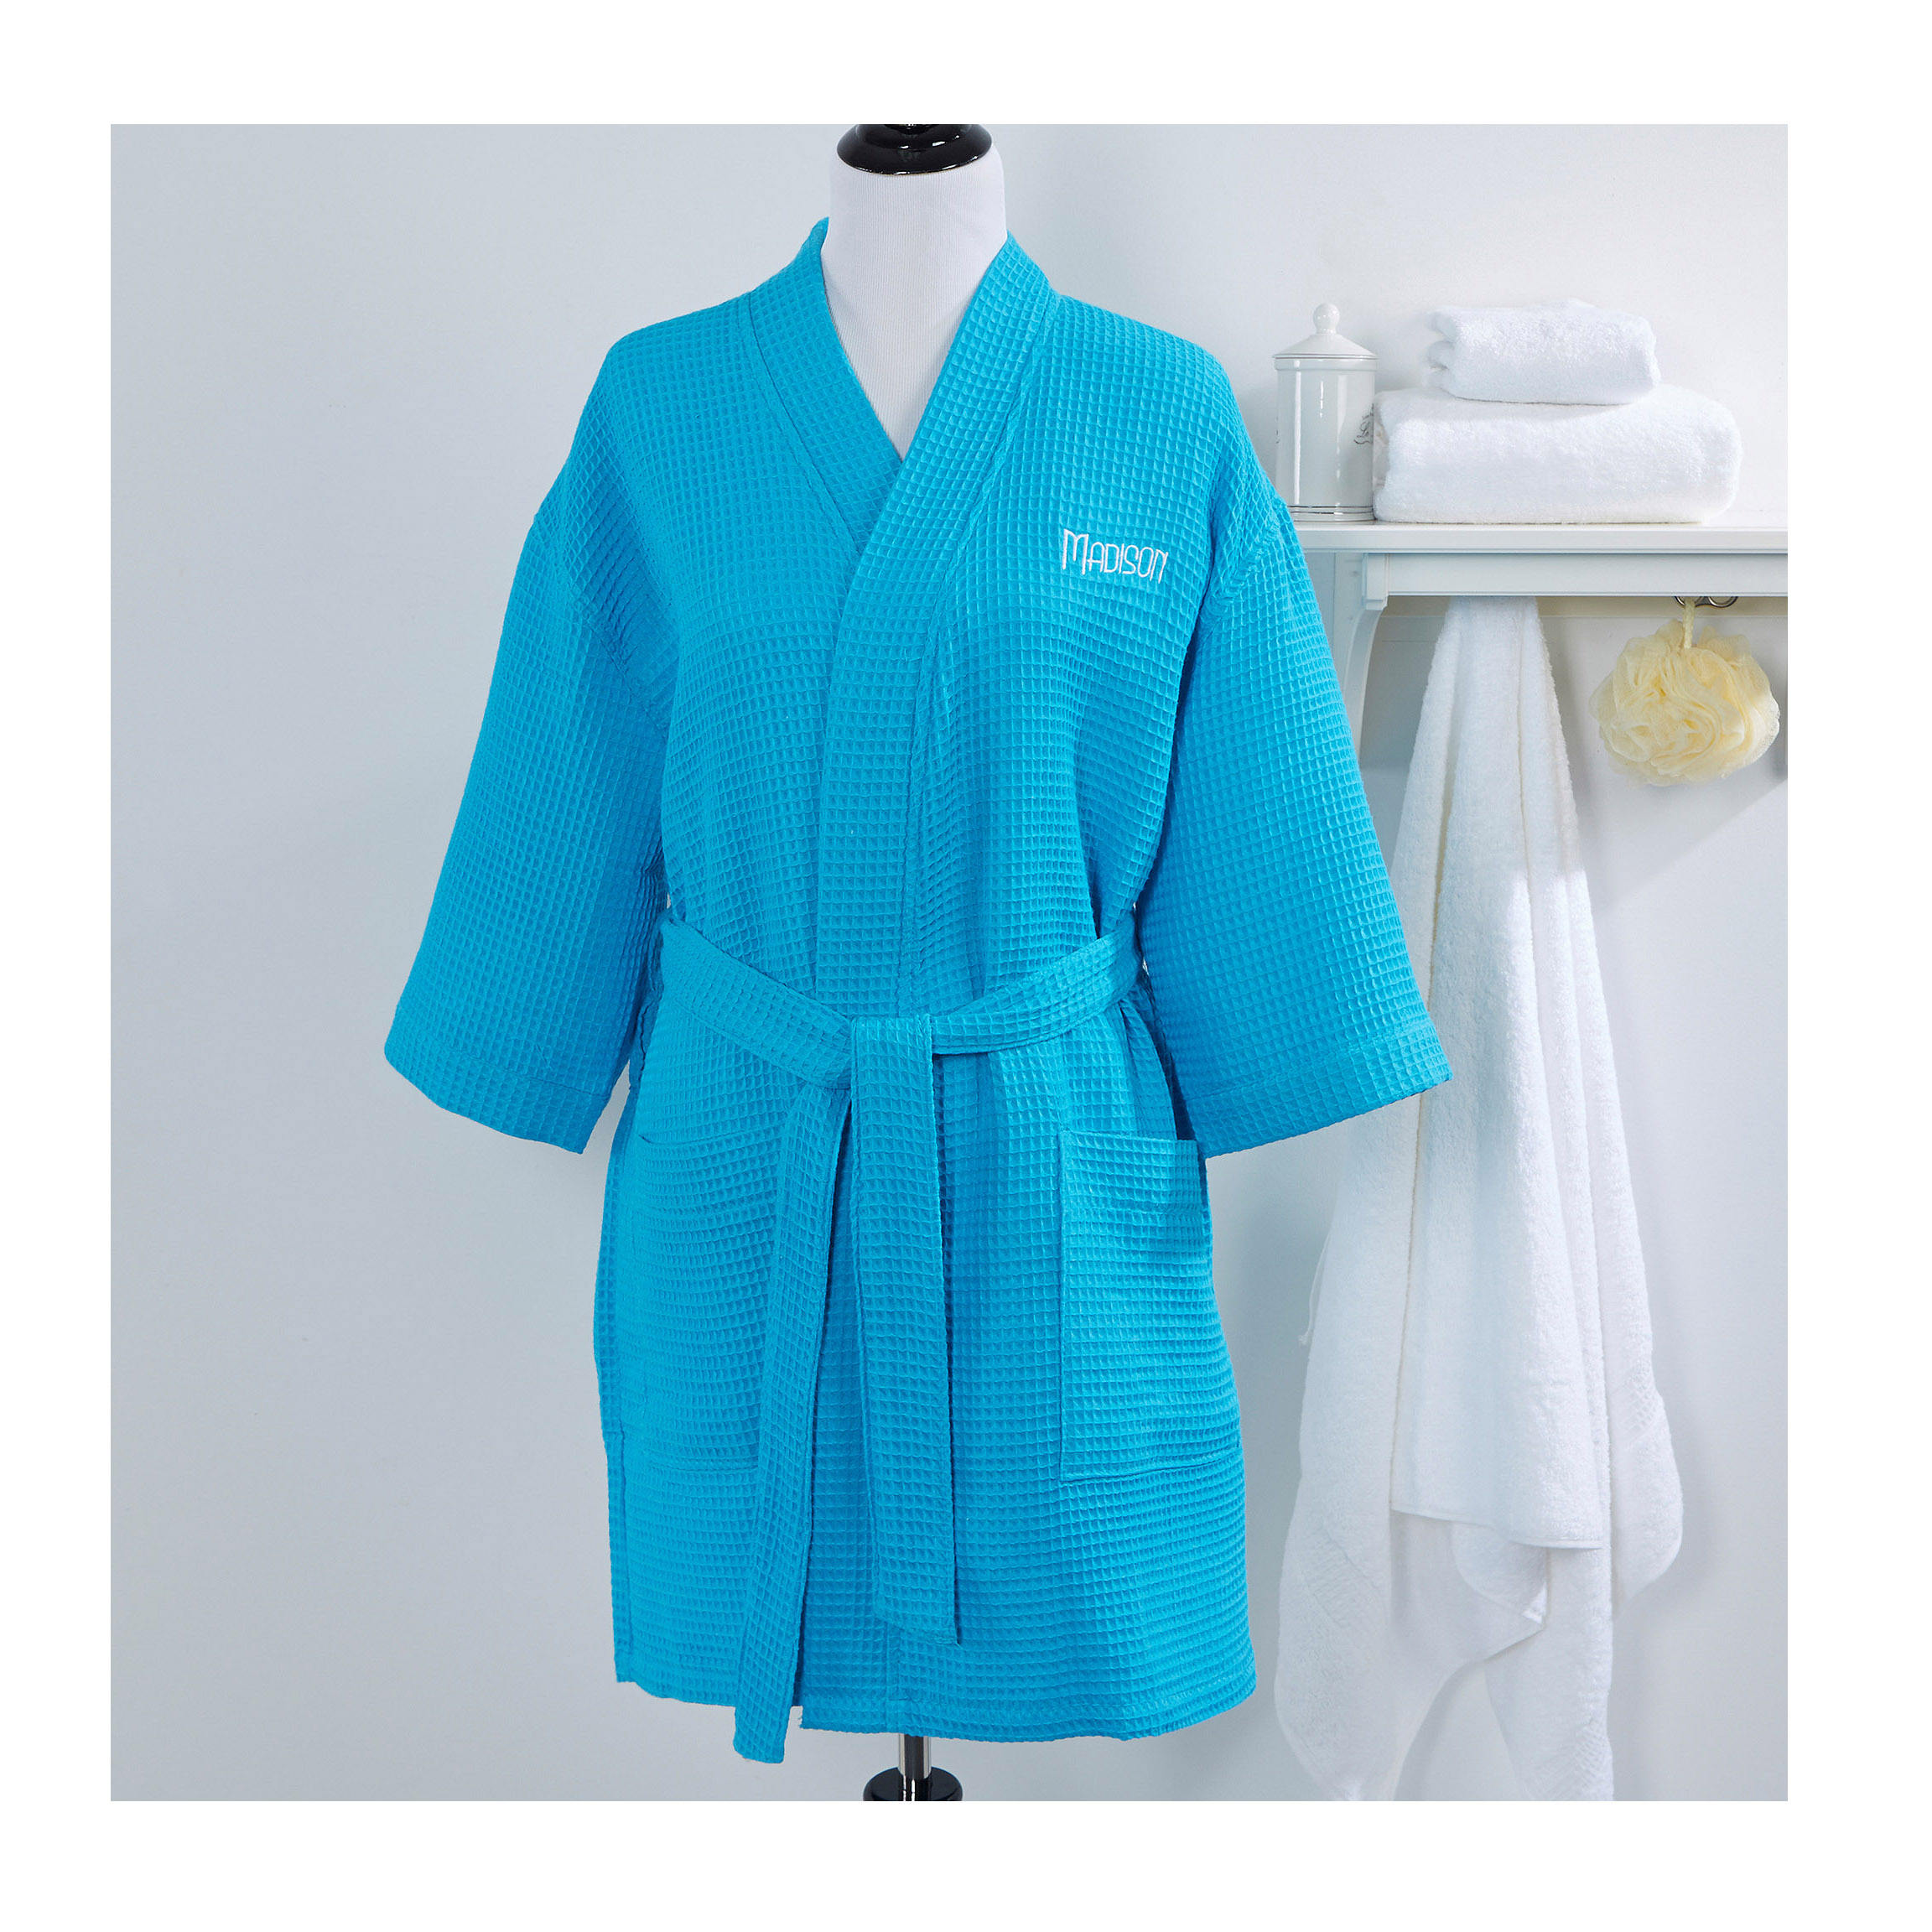 Private label unisex luxury bath and body works bath robe men's waffle short robe